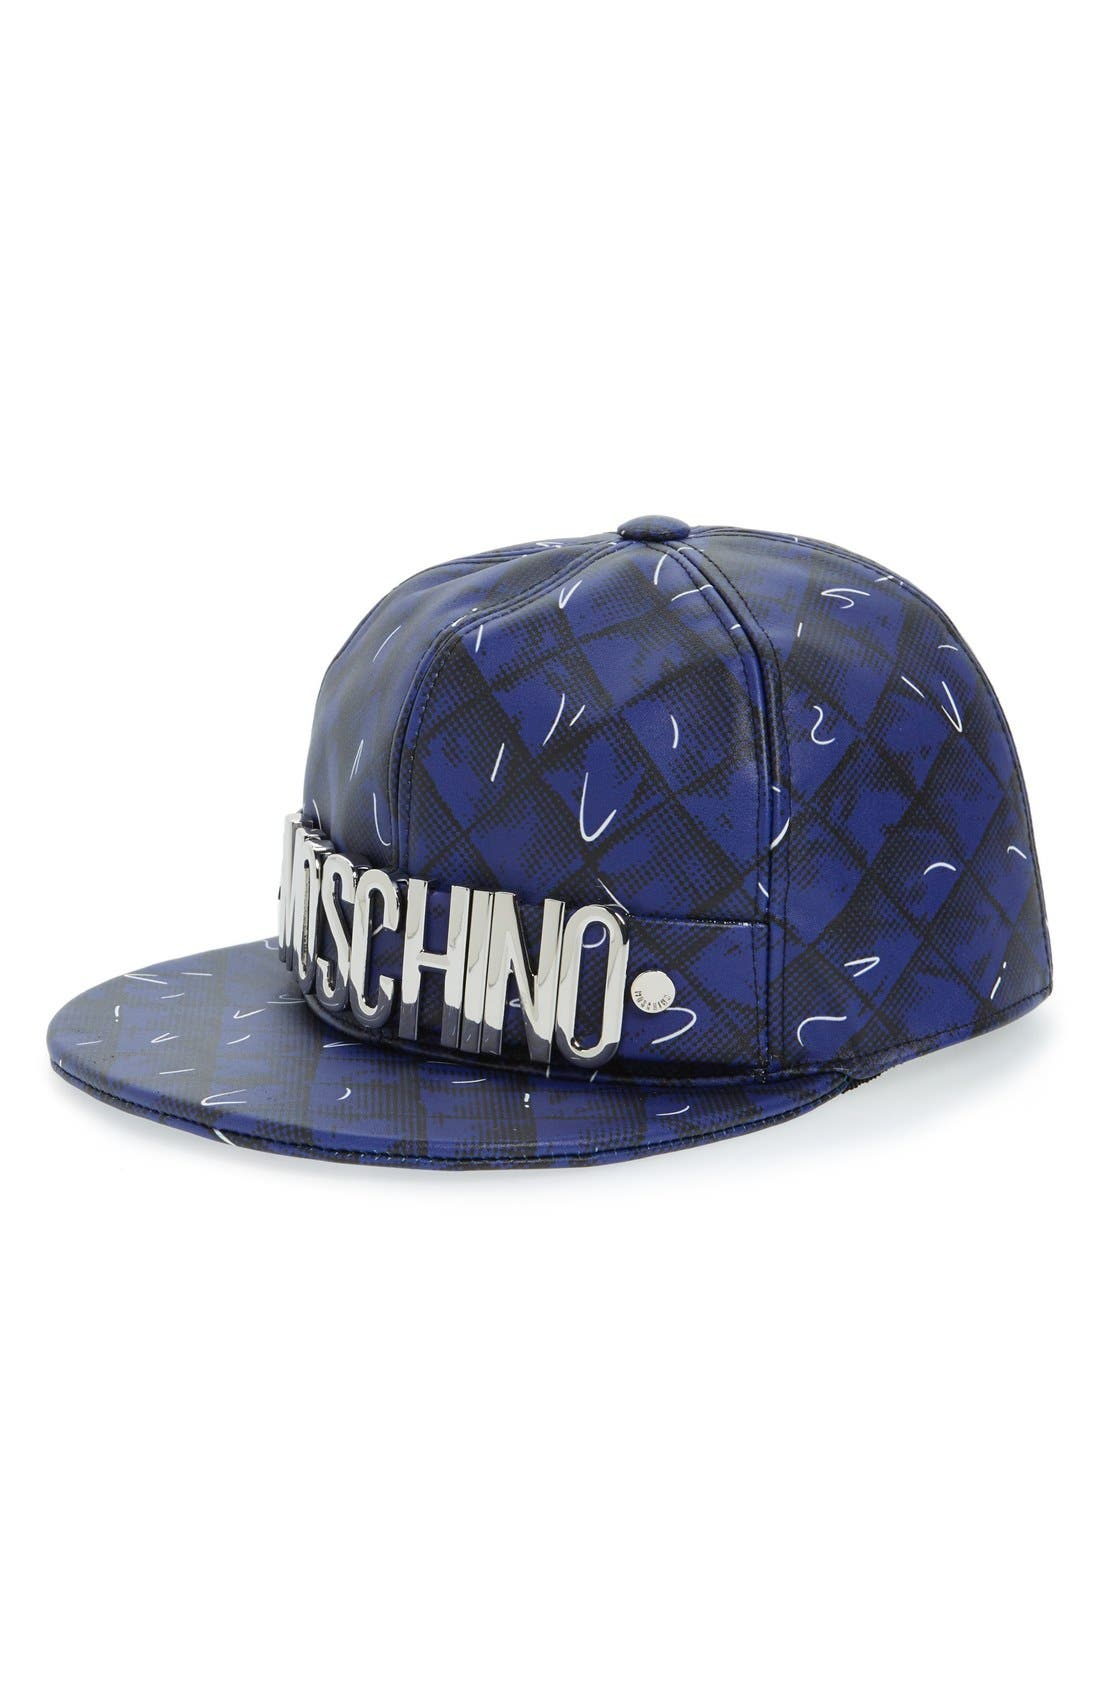 Moschino 'Shadow' Leather Baseball Cap